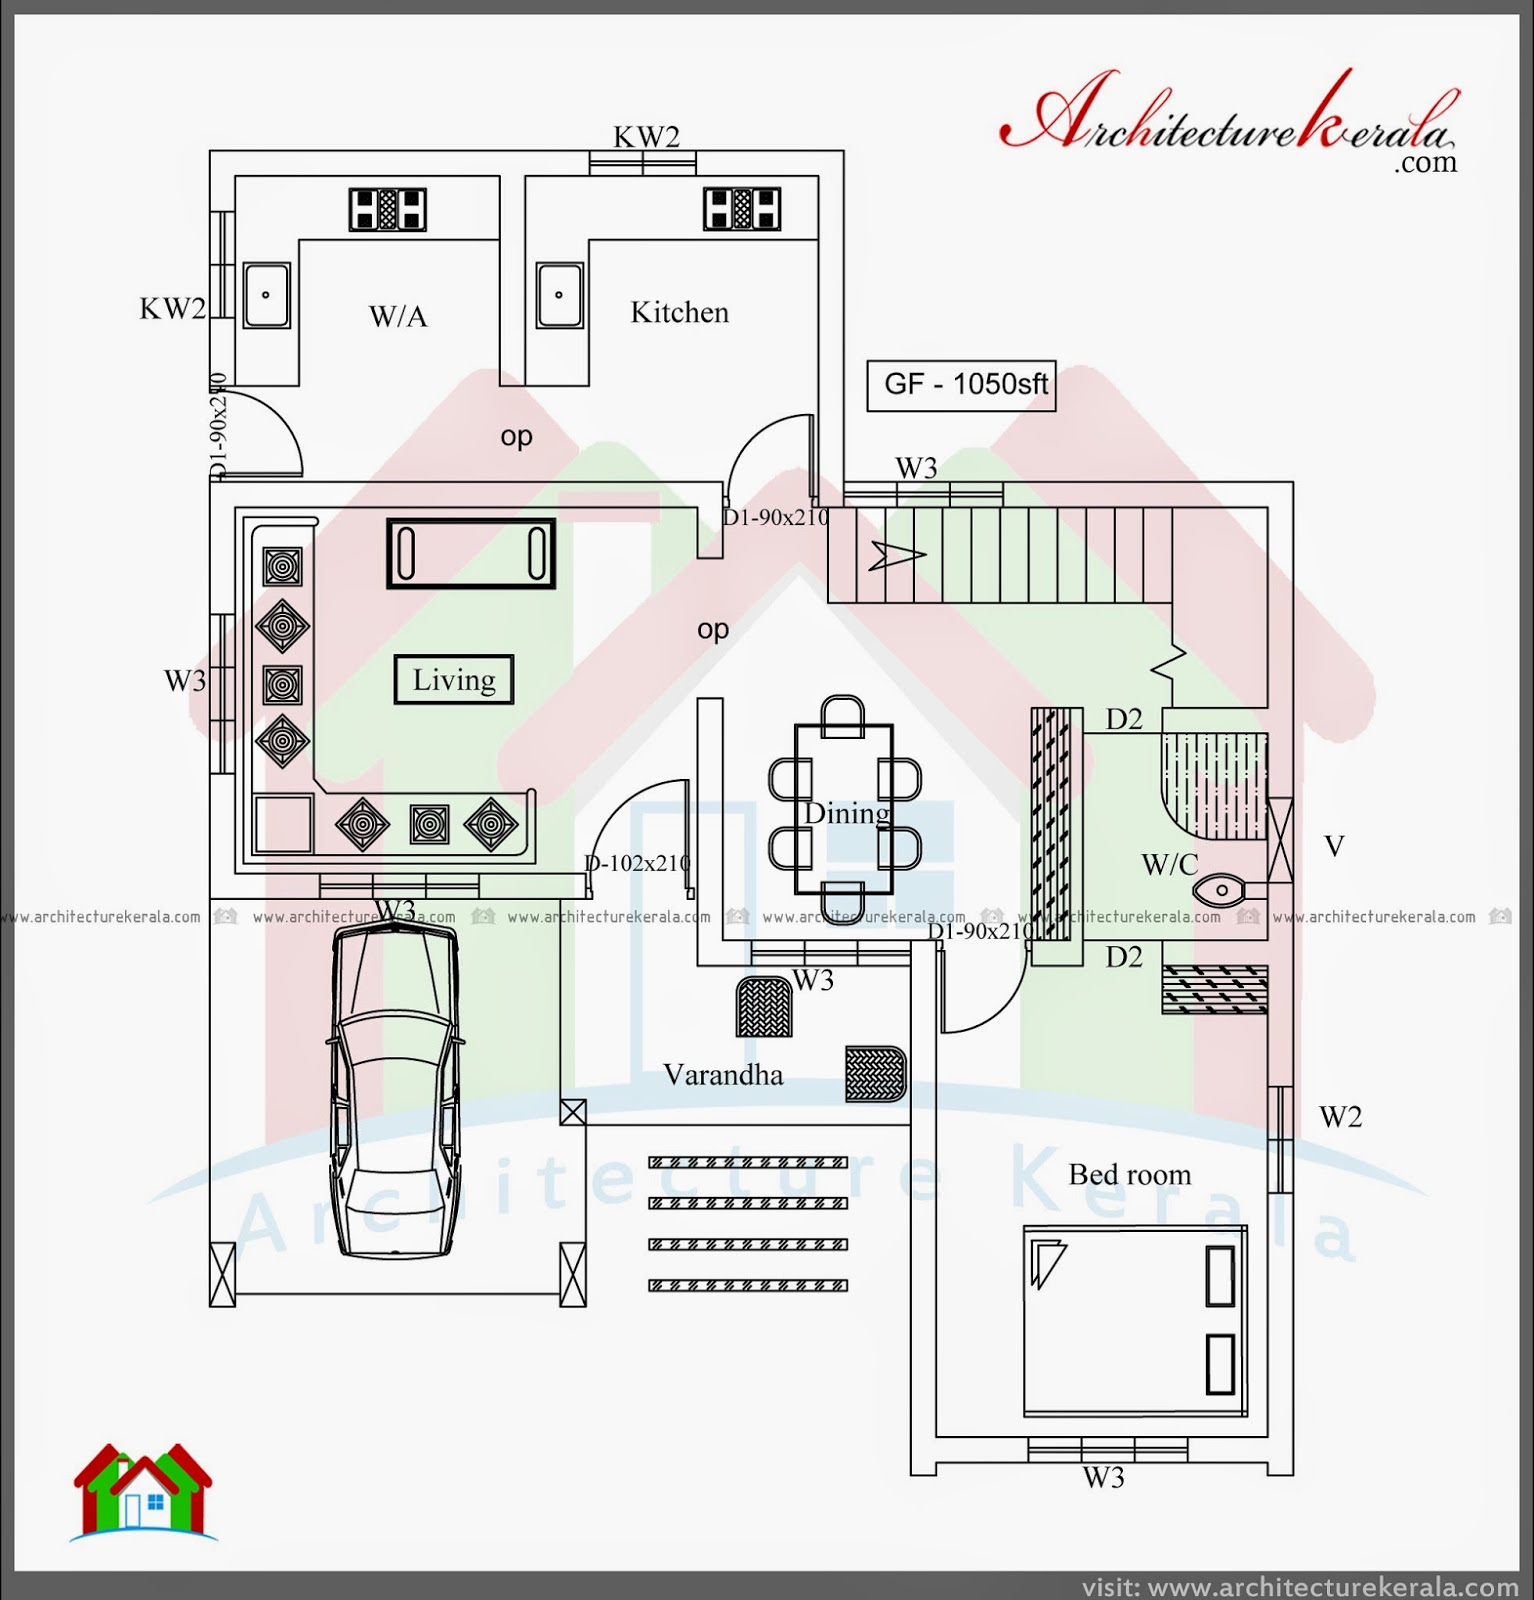 Three bedroom two storey house plan architecture kerala for 3 bedroom house plan kerala